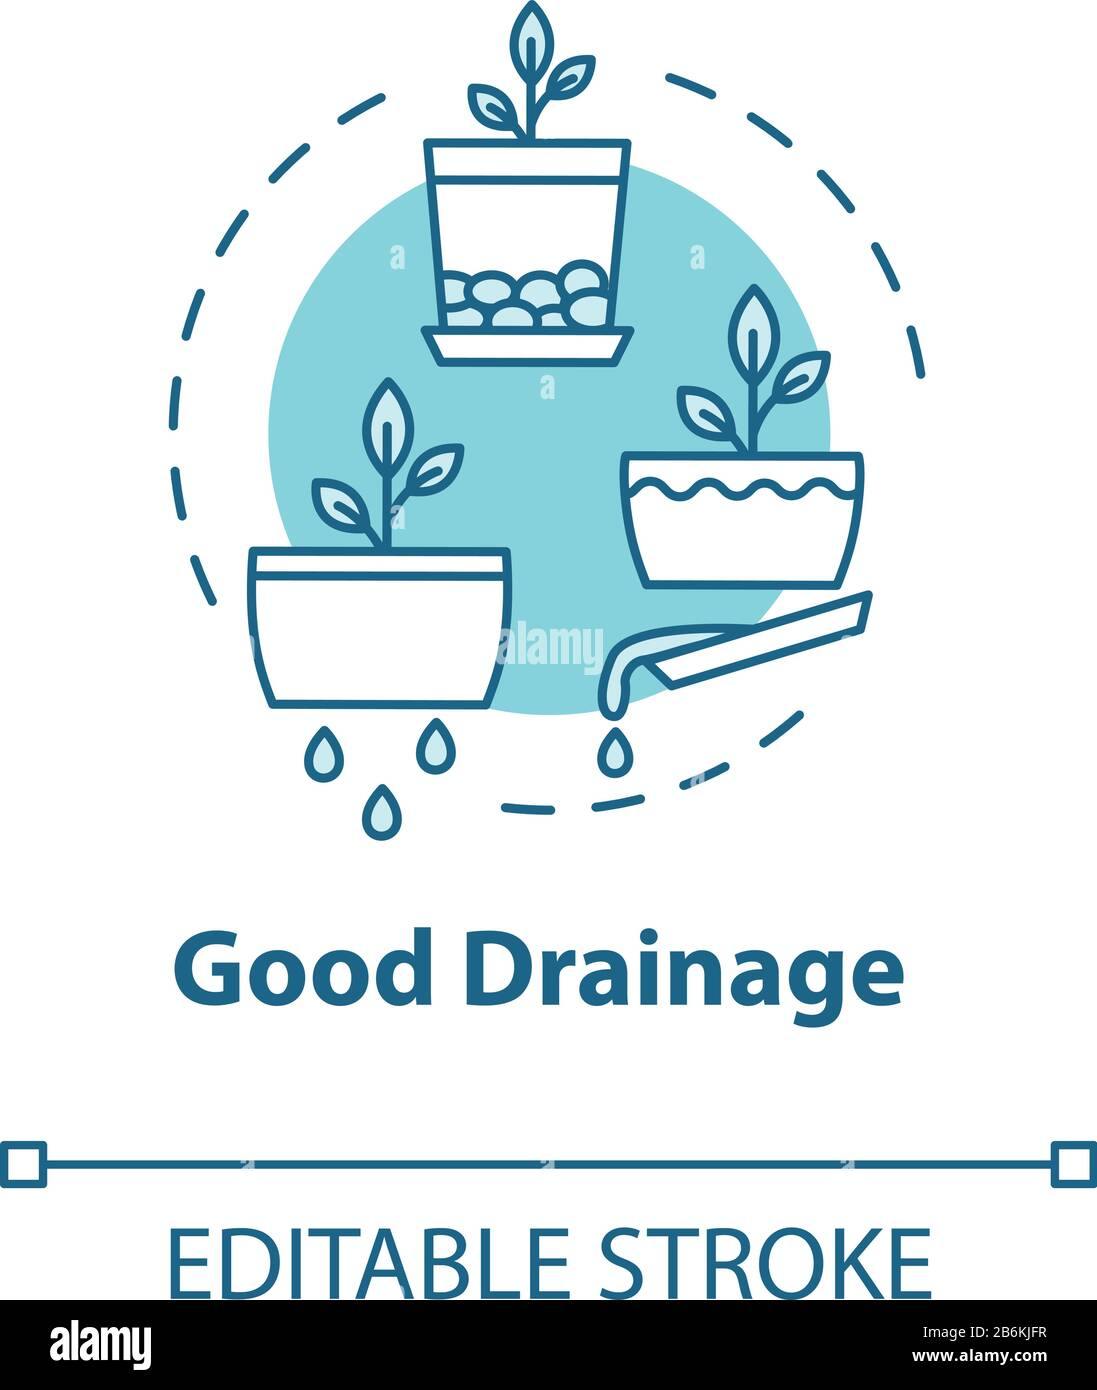 Good drainage concept icon. Houseplants caring. Home gardening tip. Plant nursing, floristry hobby idea thin line illustration. Vector isolated Stock Vector